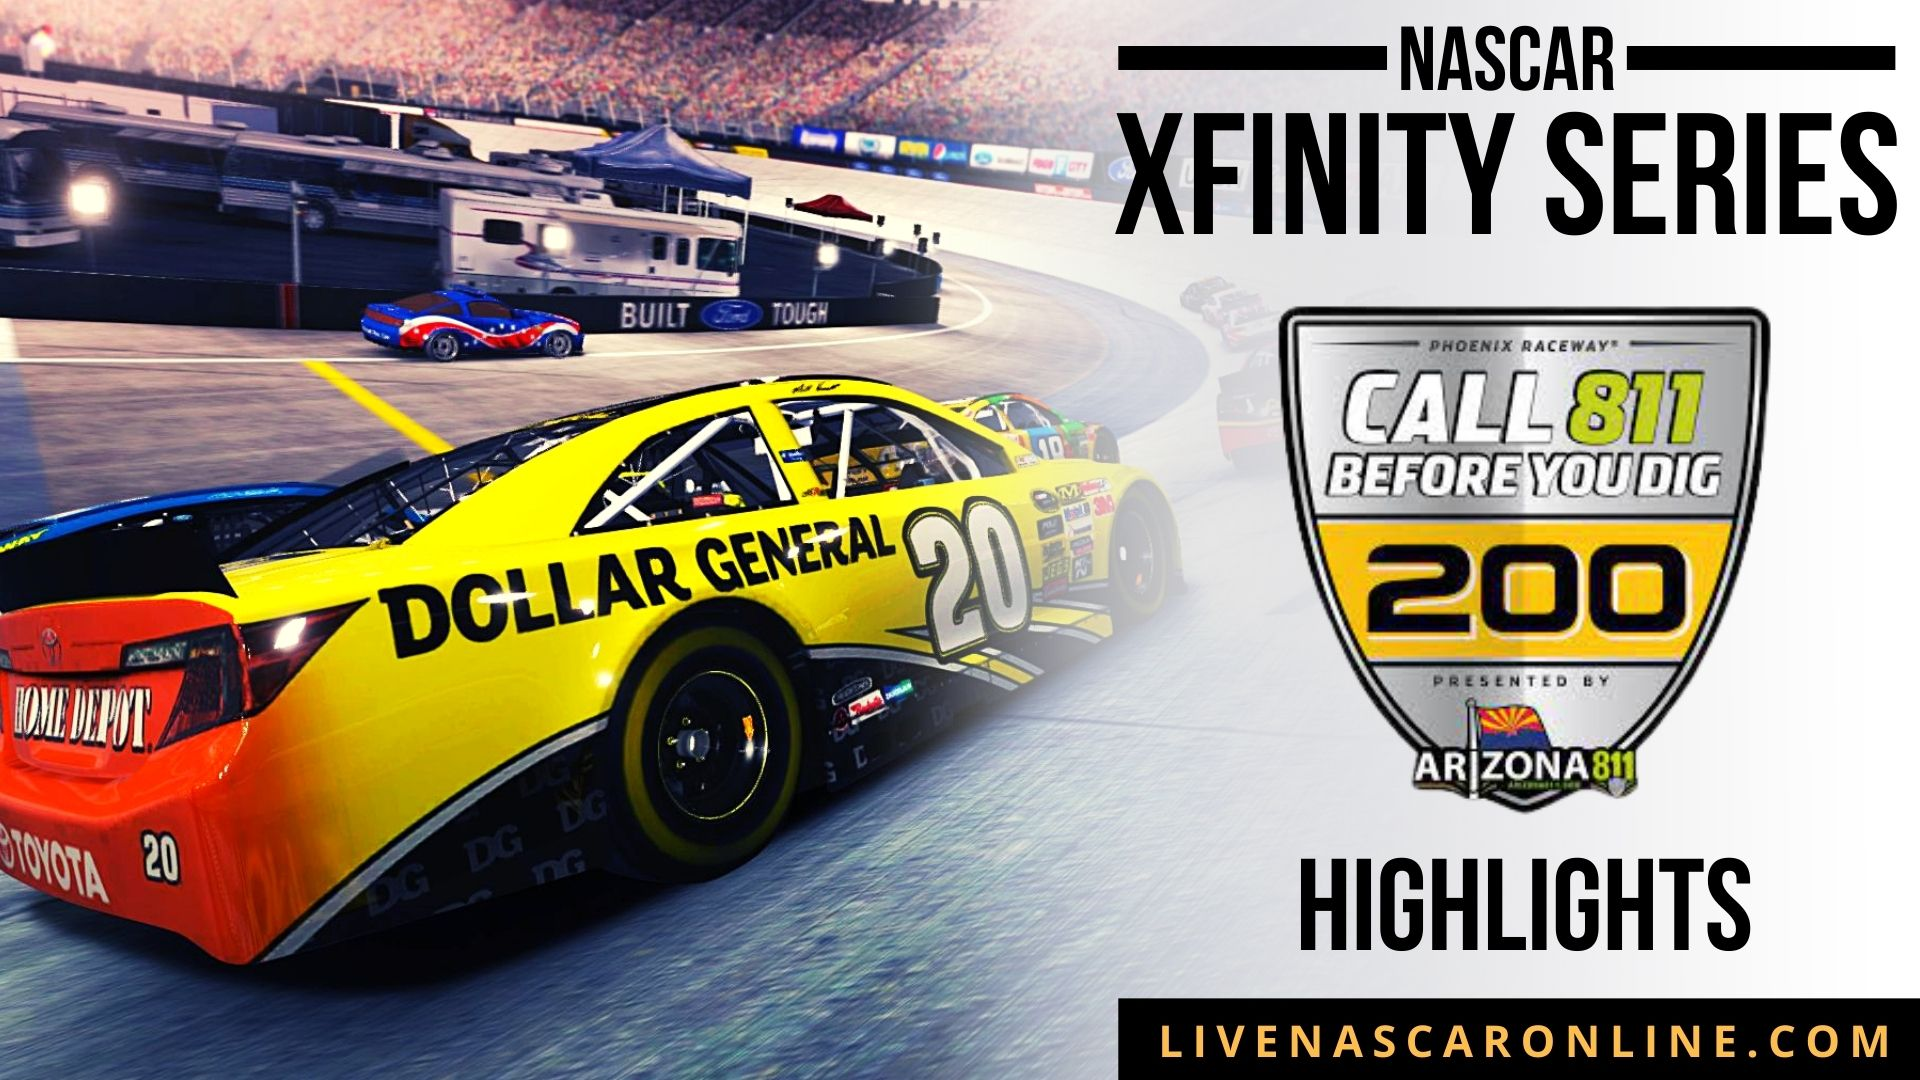 Call 811 Before You Dig 200 Highlights 2021 Nascar Xfinity Series